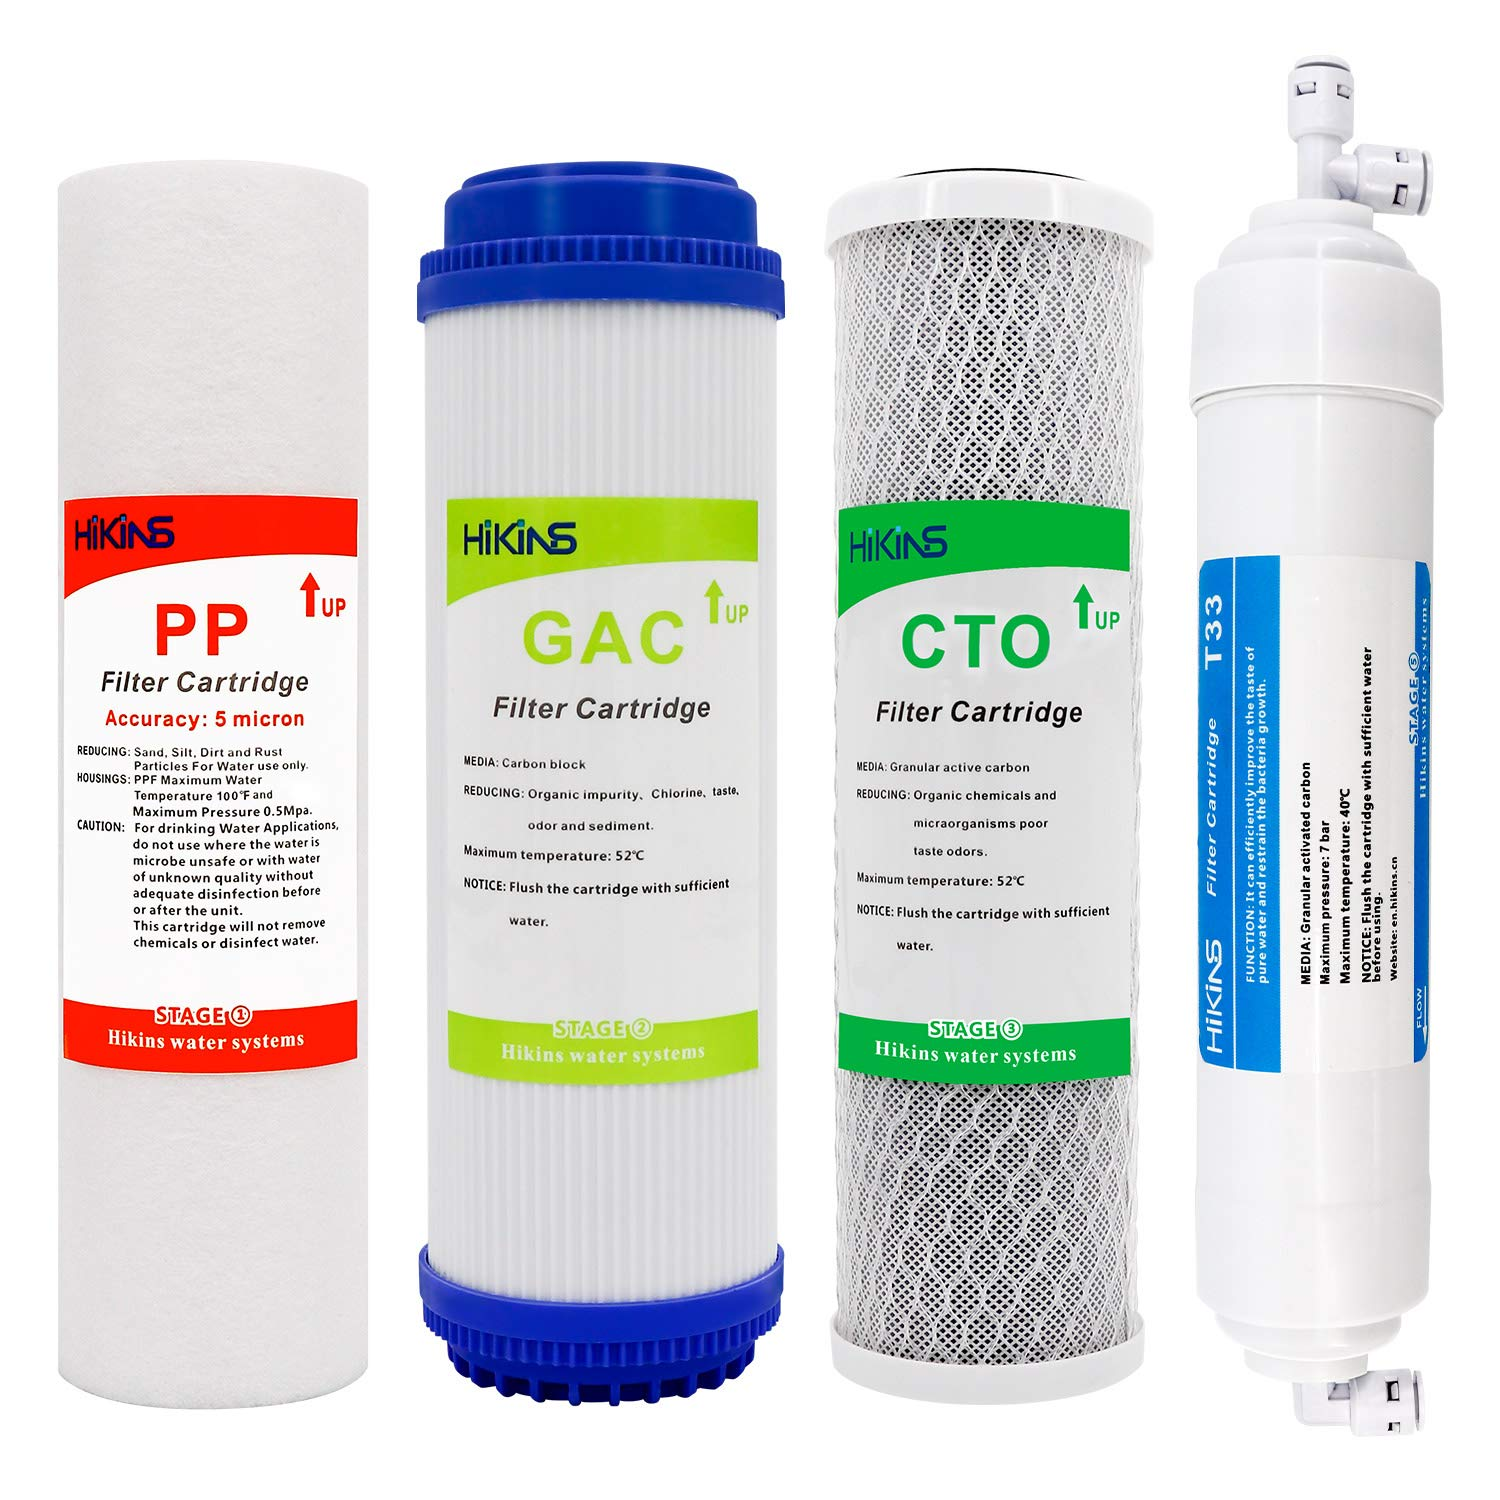 HiKiNS Advanced Reverse Osmosis Filter Replacement Set for 5-Stage Reverse Osmosis Water Filtration Systems with Compatible 10-in PP Sediment, GAC,CTO and T33 Post Carbon Filter(4-Pack NO Membrane)